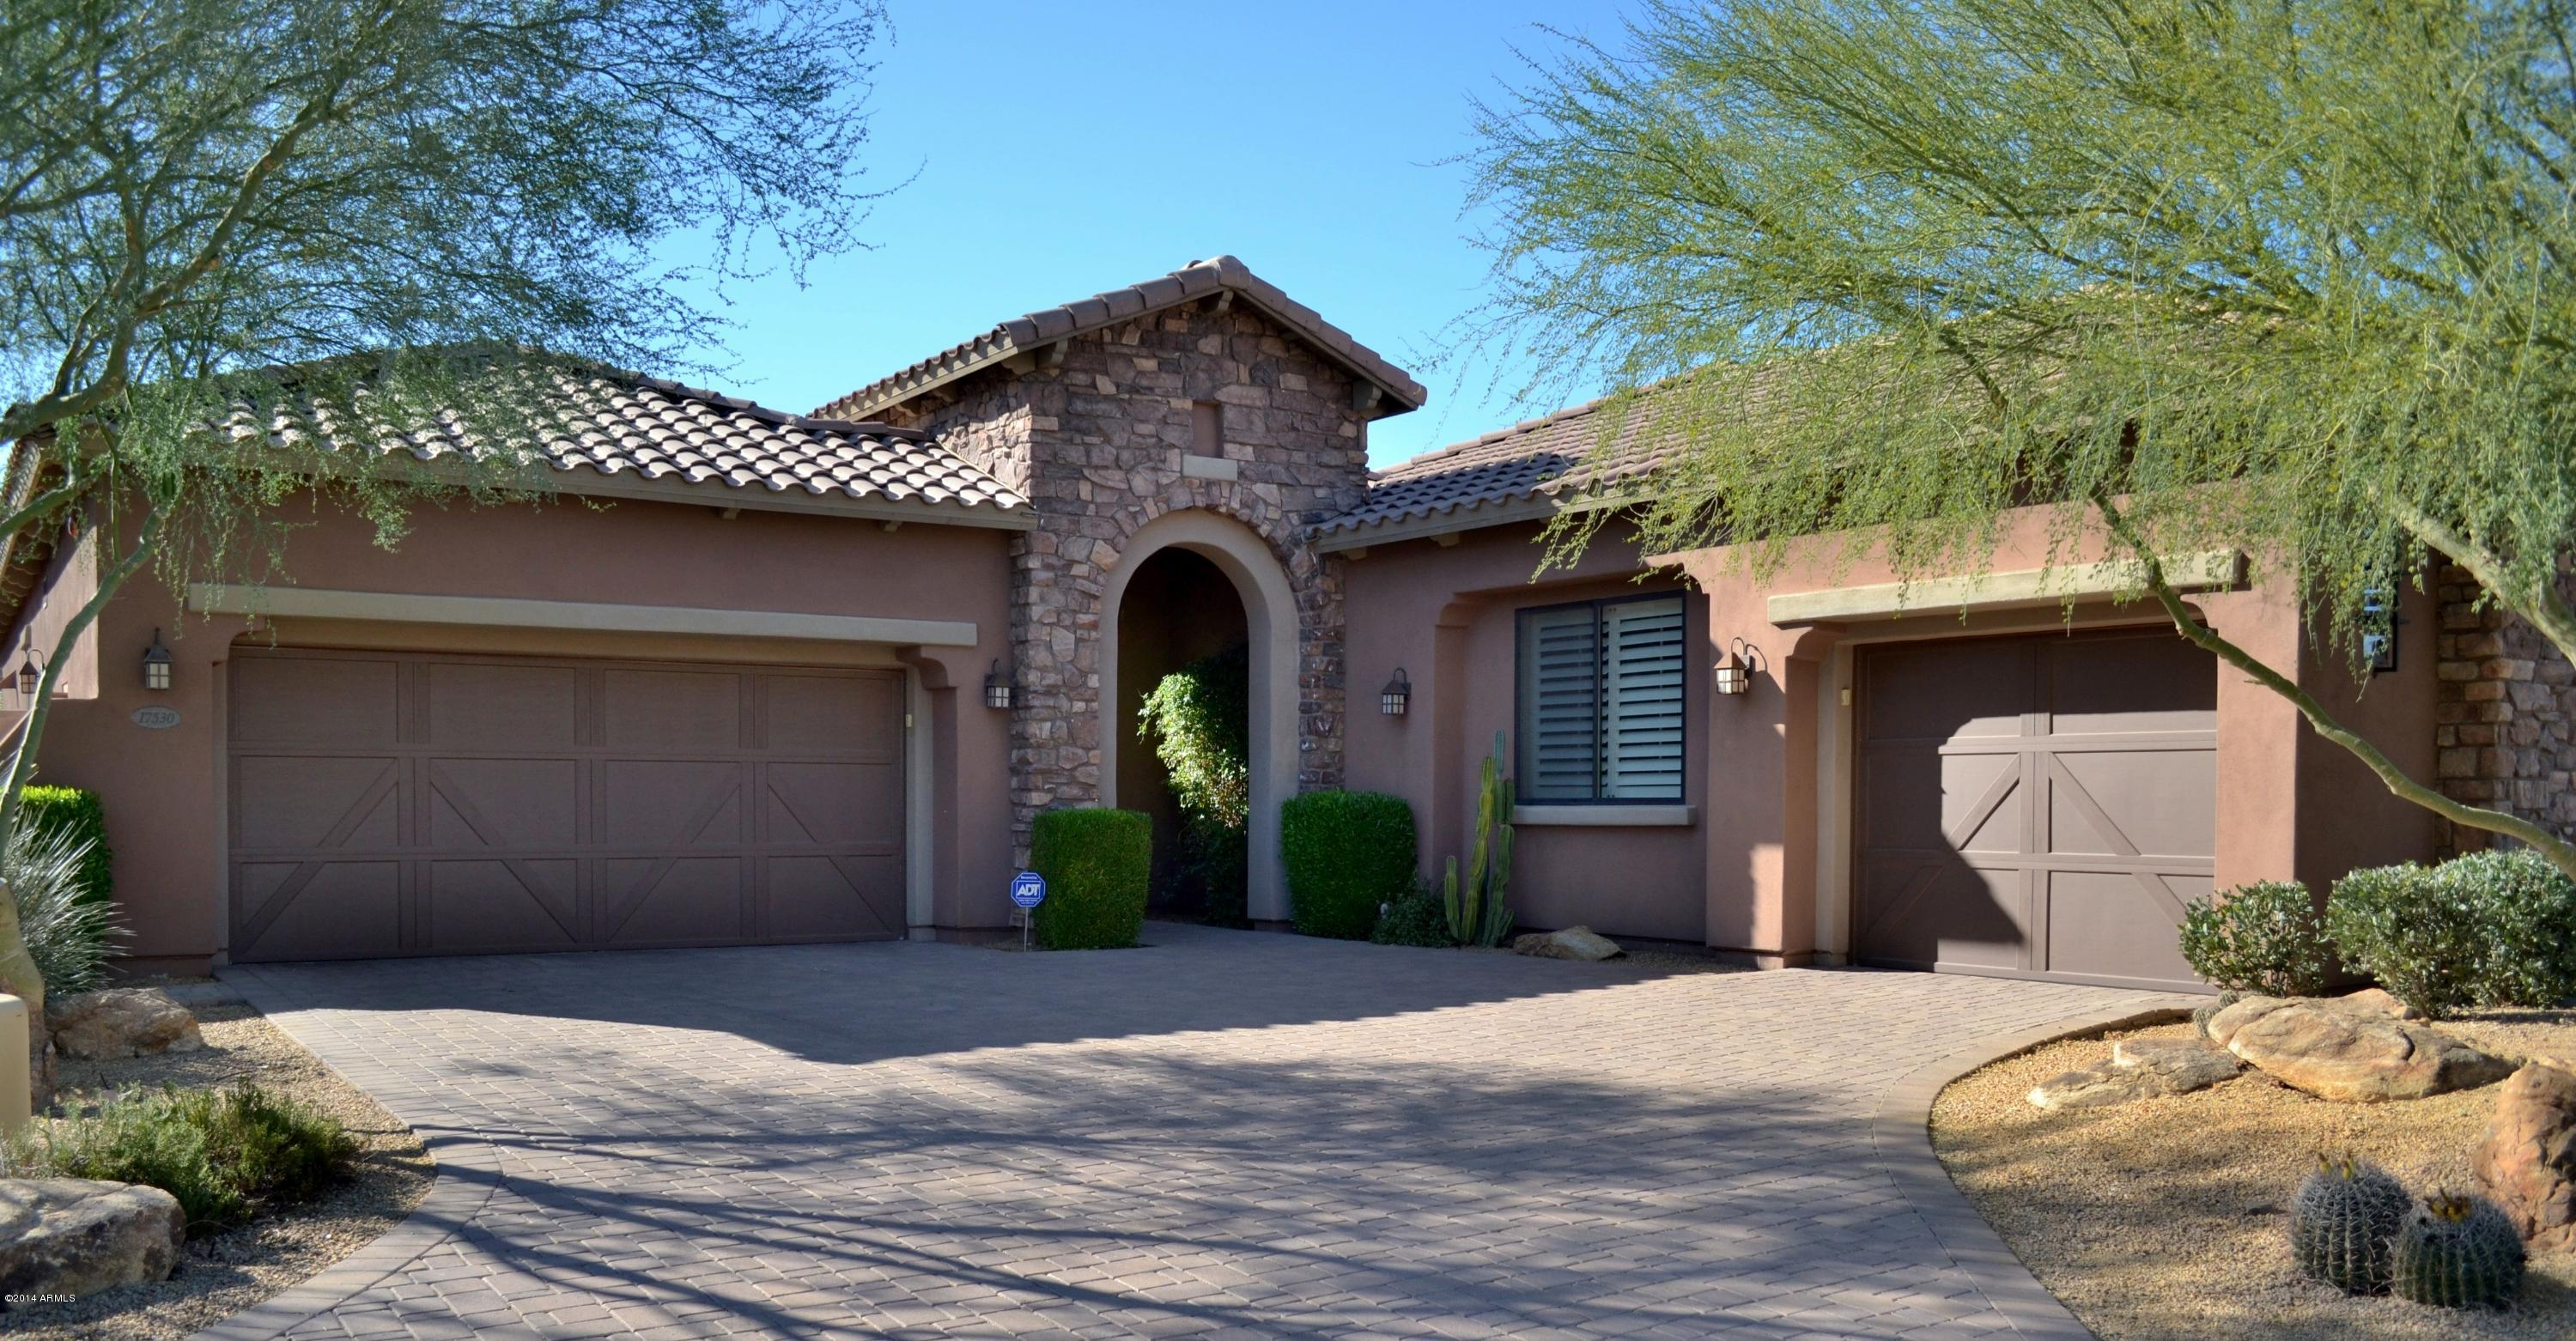 Phoenix Home Sales on Track to Increase 30%